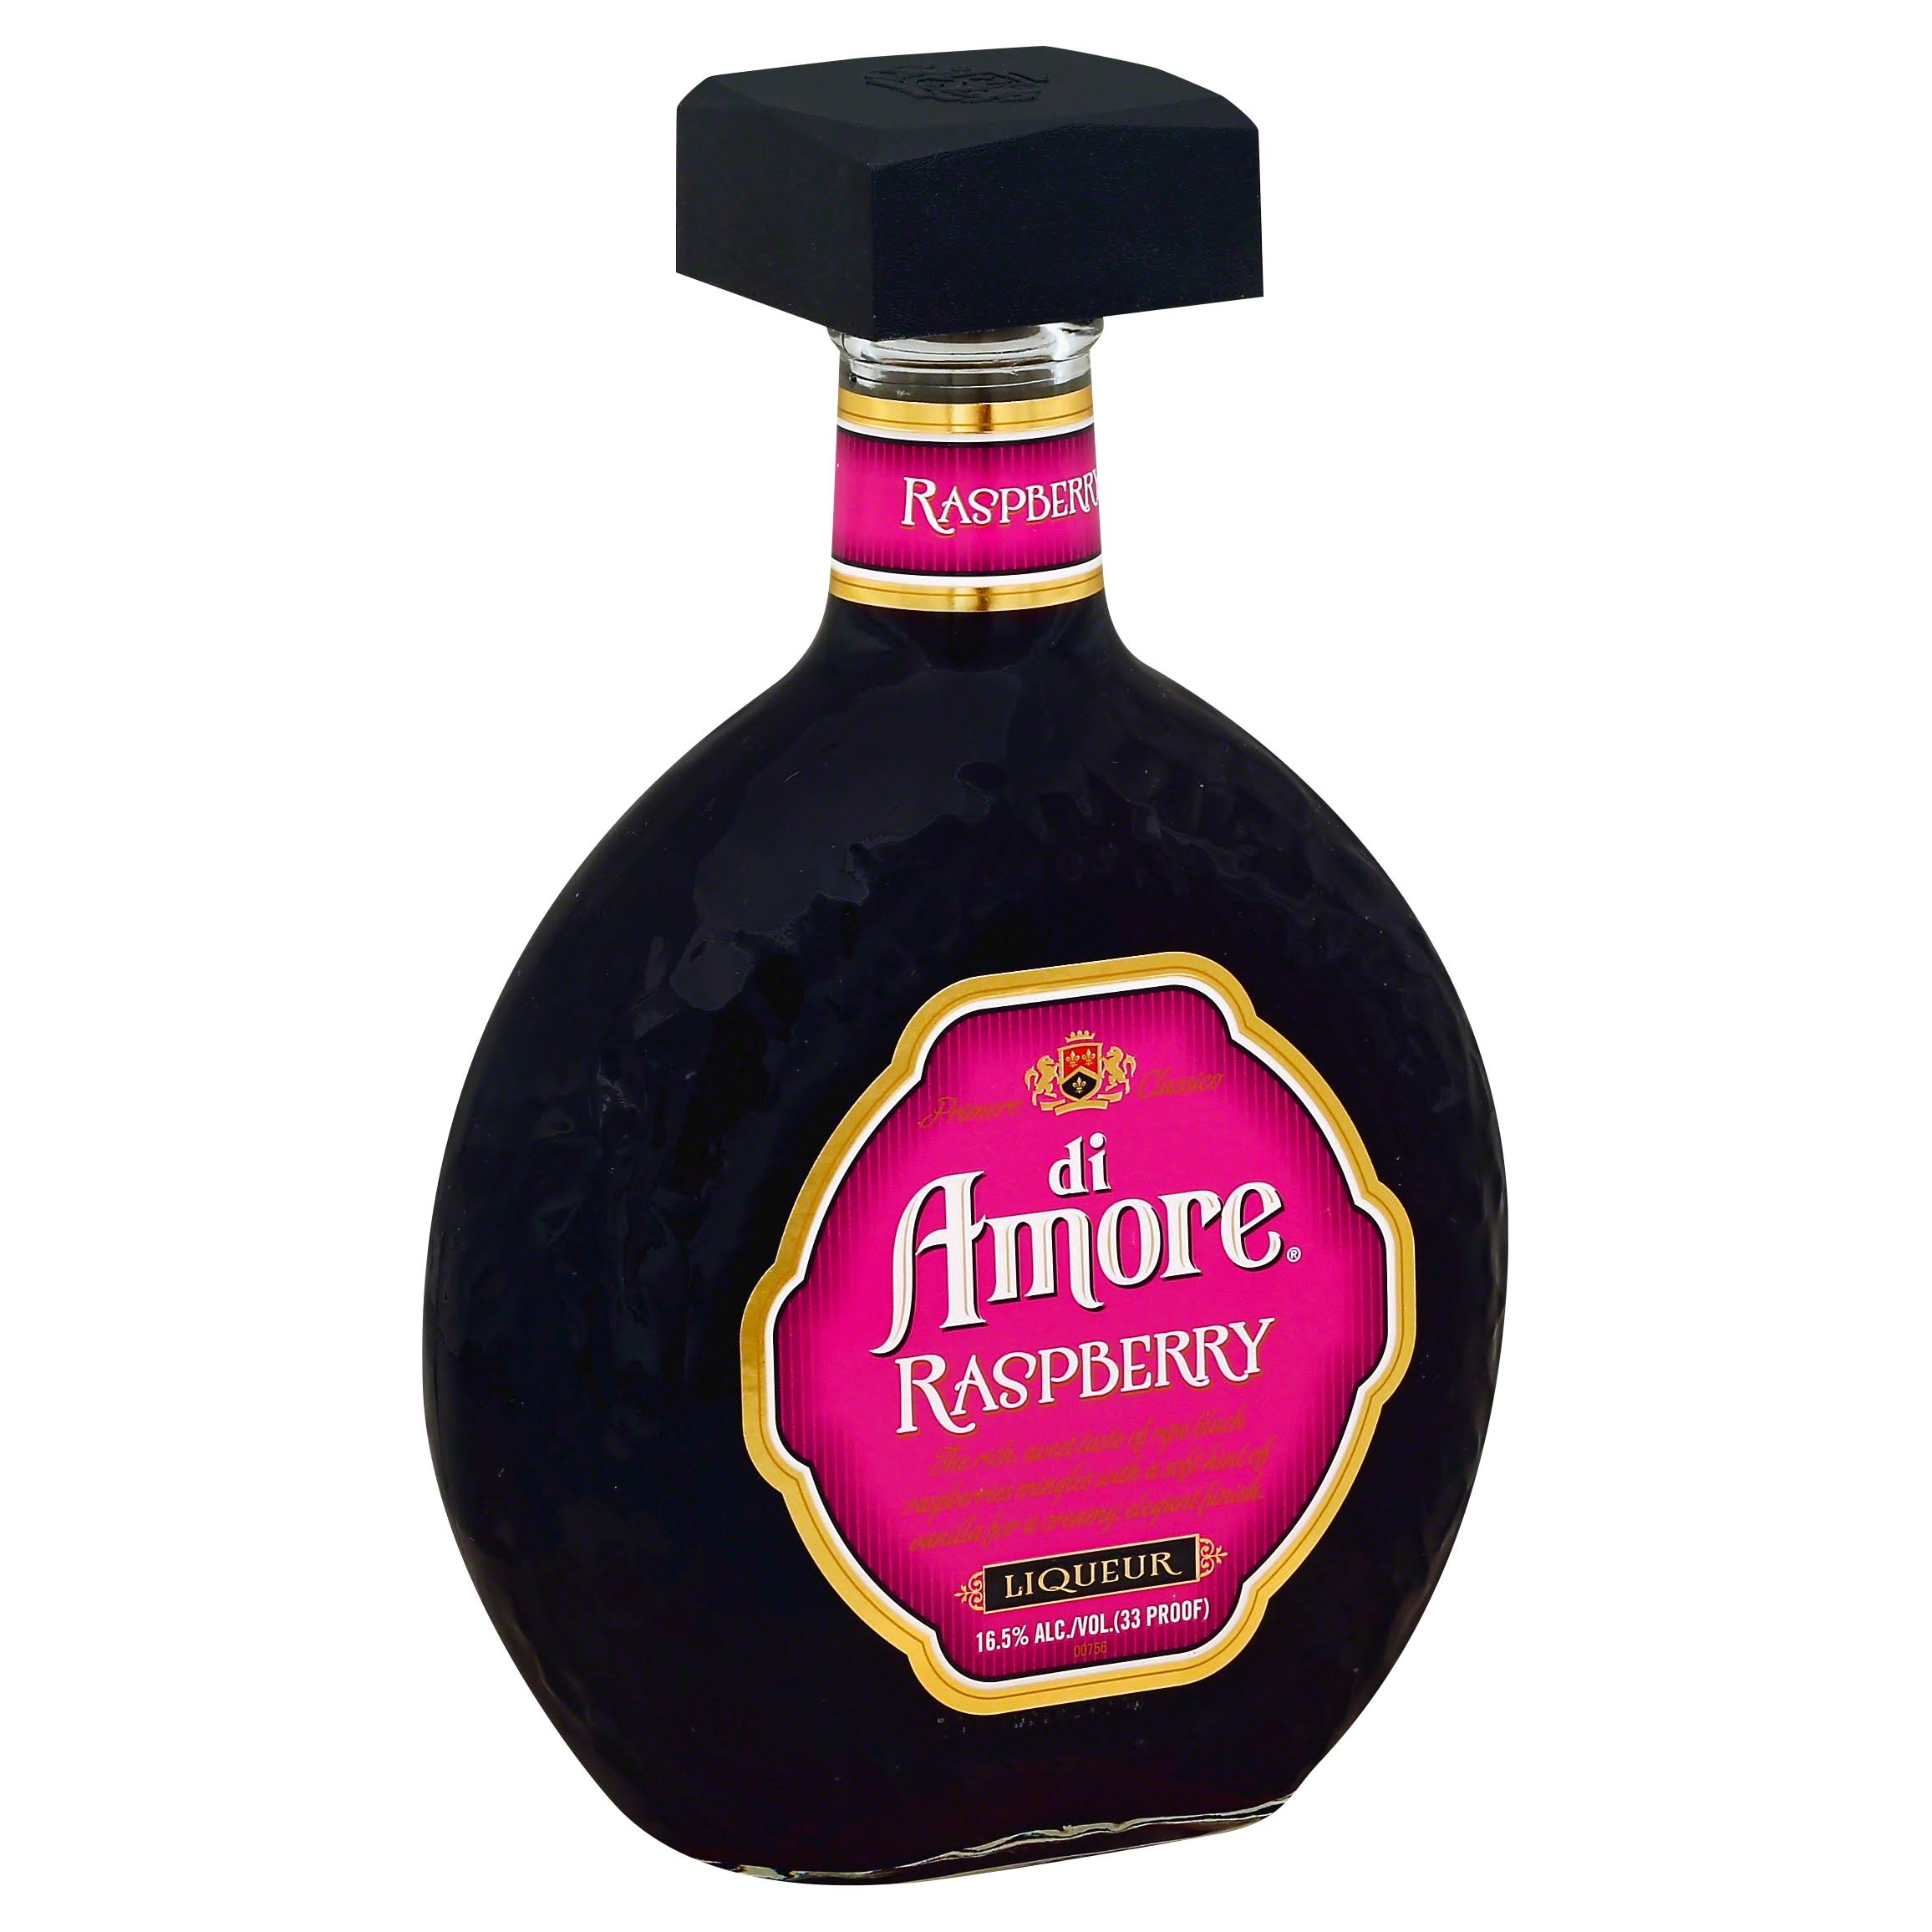 Di Amore Raspberry Liqueur - 750ml